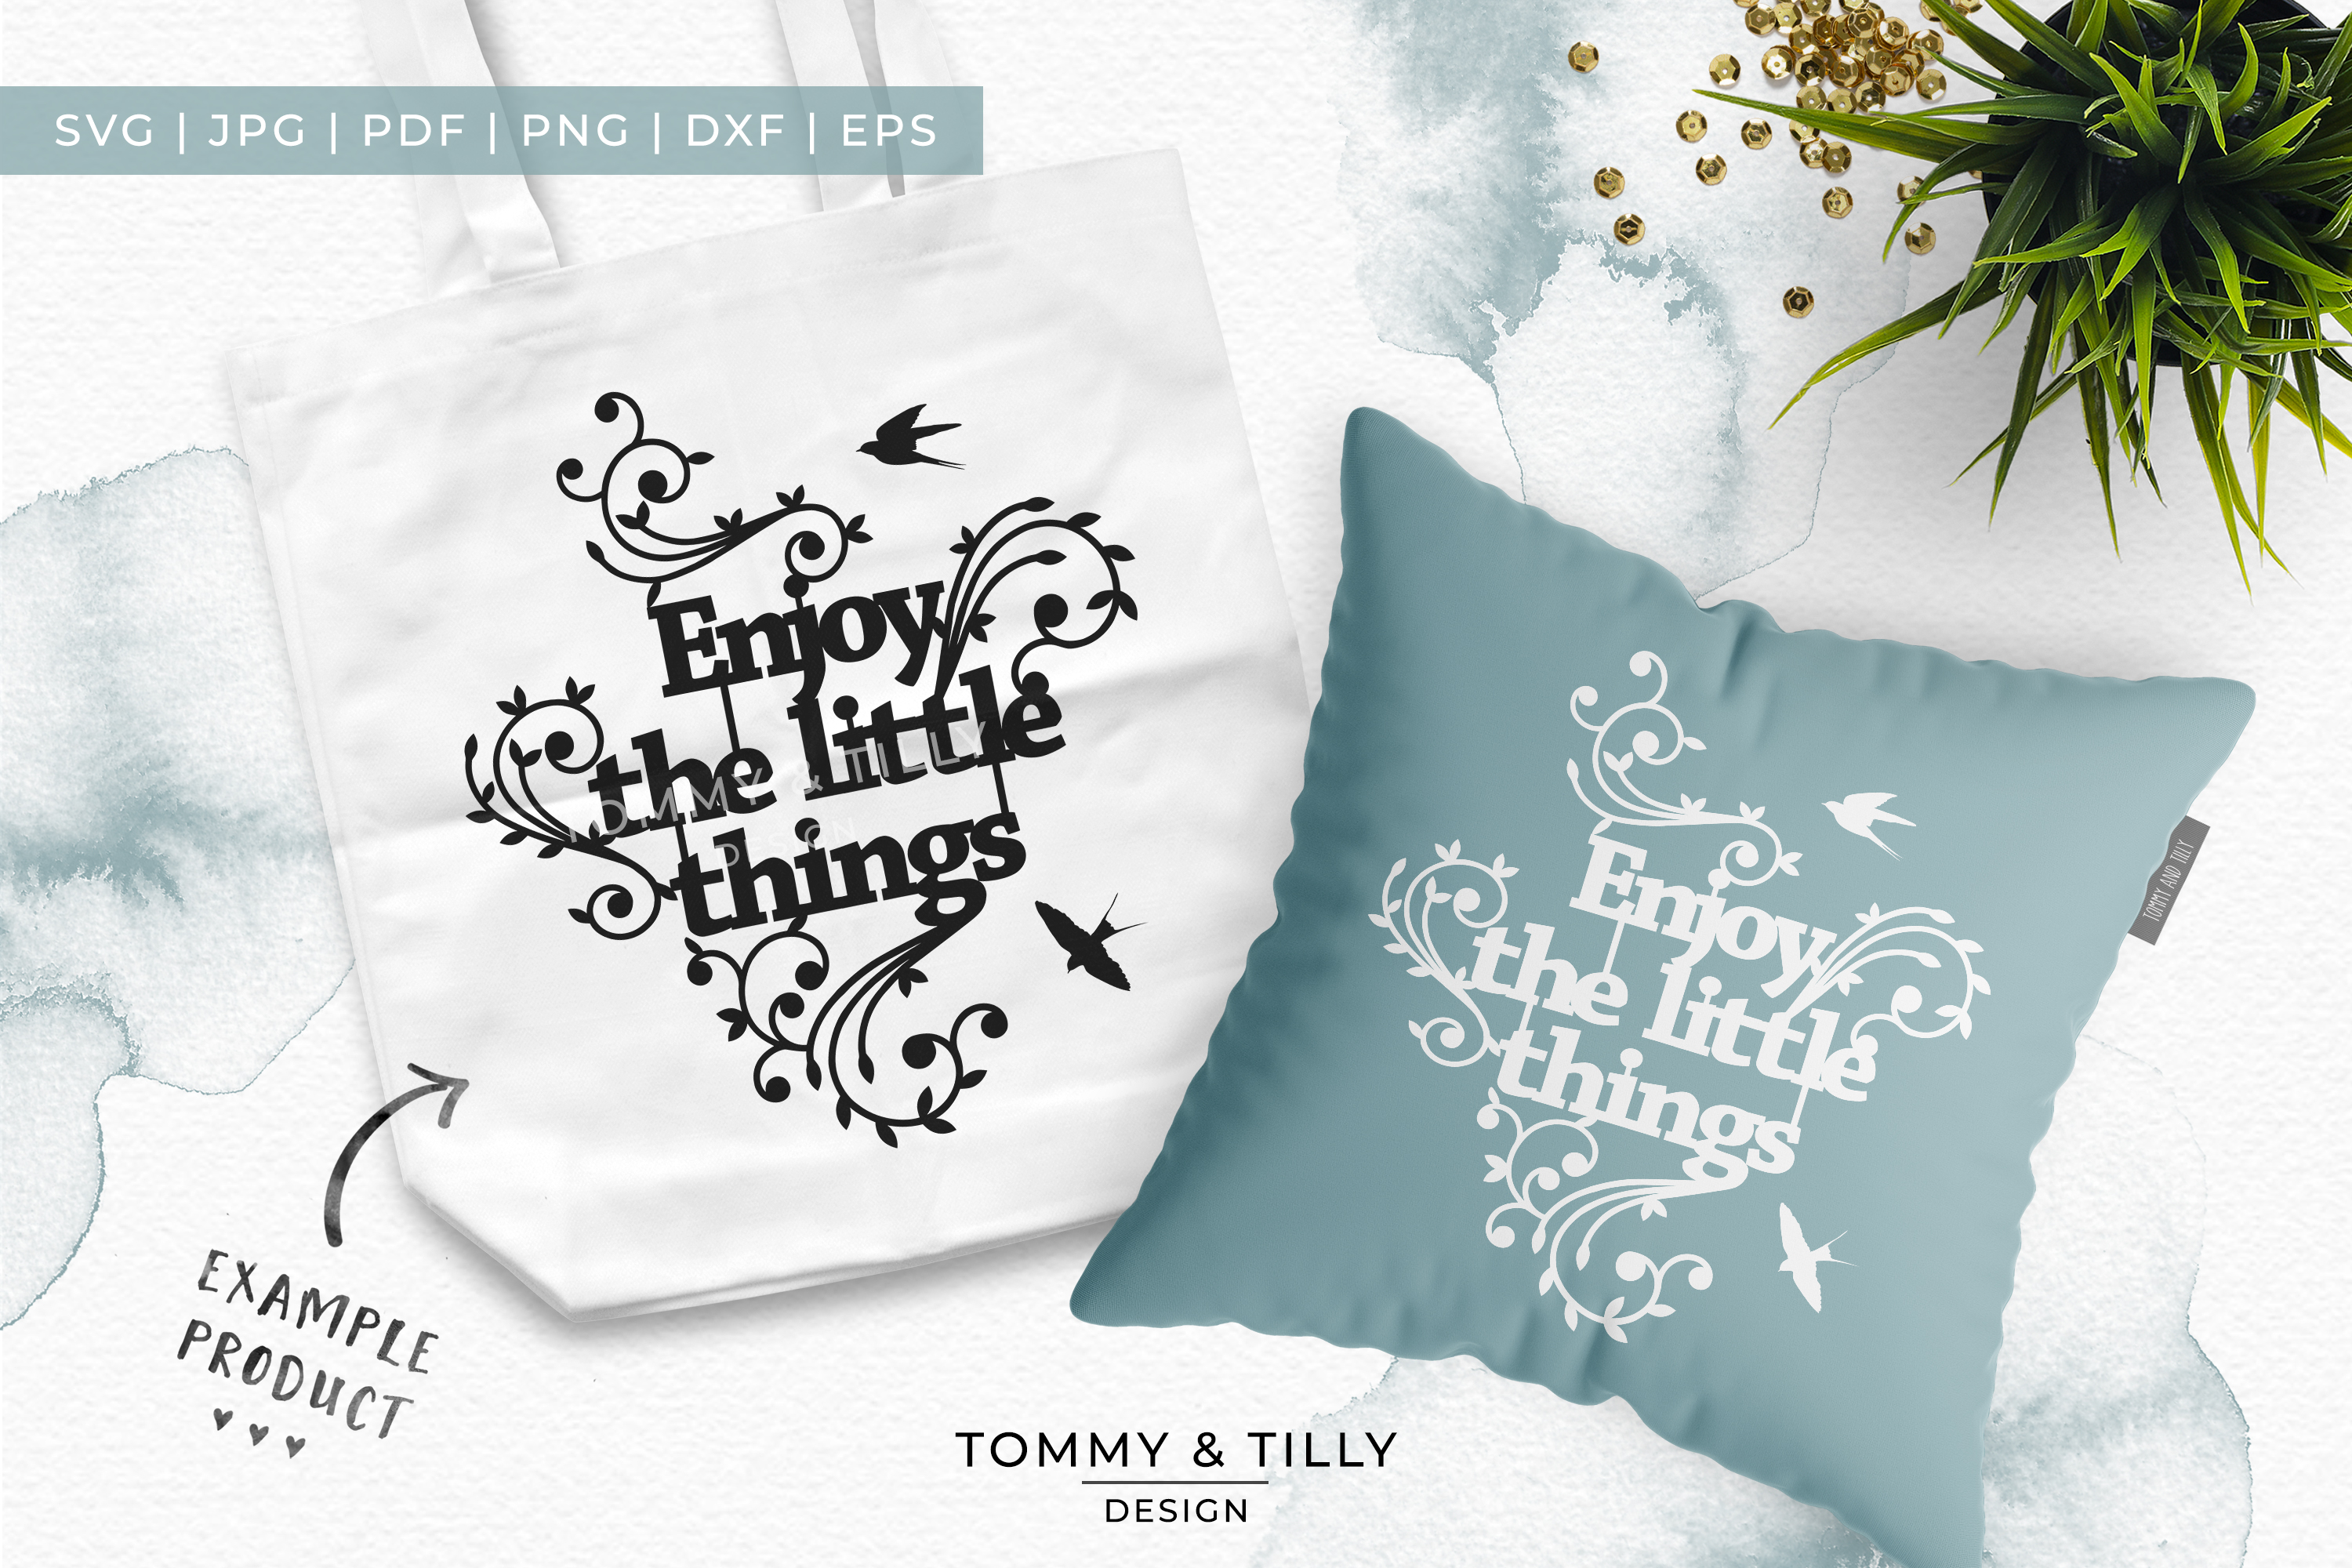 Inspirational Quotes Bundle - Papercut SVG DXF PNG JPG PD example image 4